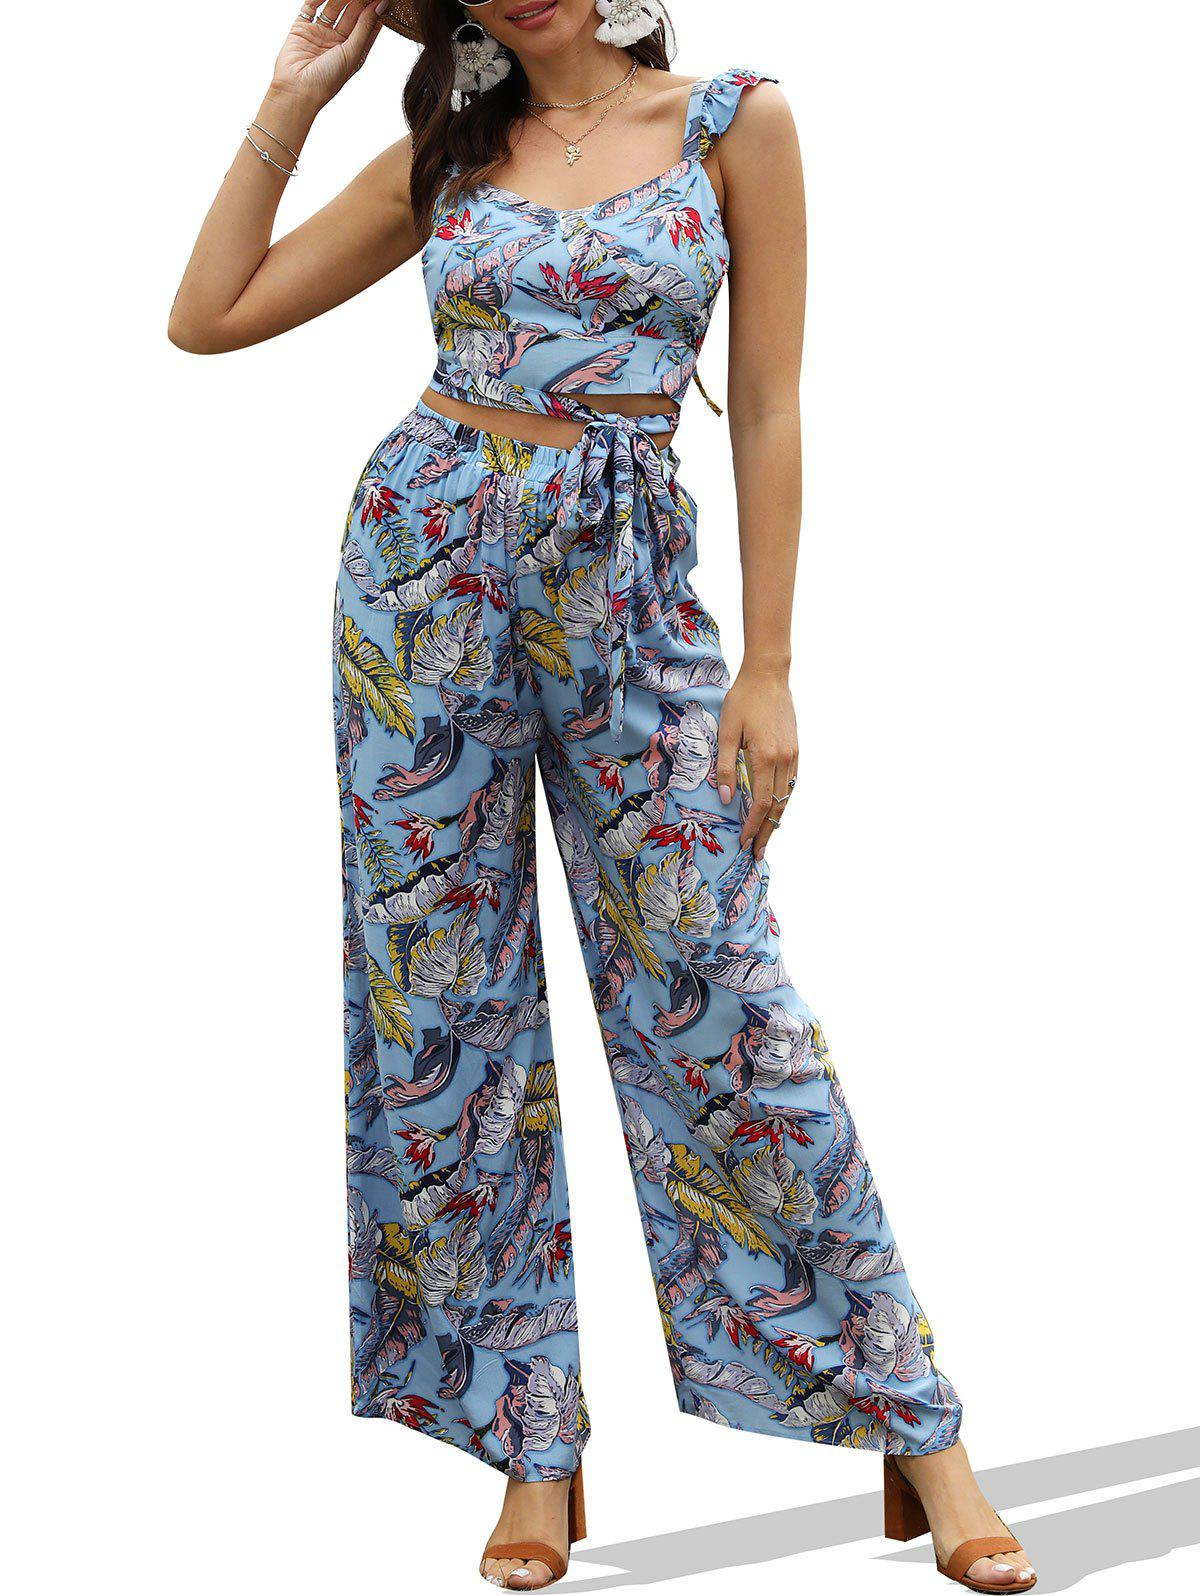 Tropical Print Wrap Crop Top and Wide Leg Pants - BLUE GRAY XL